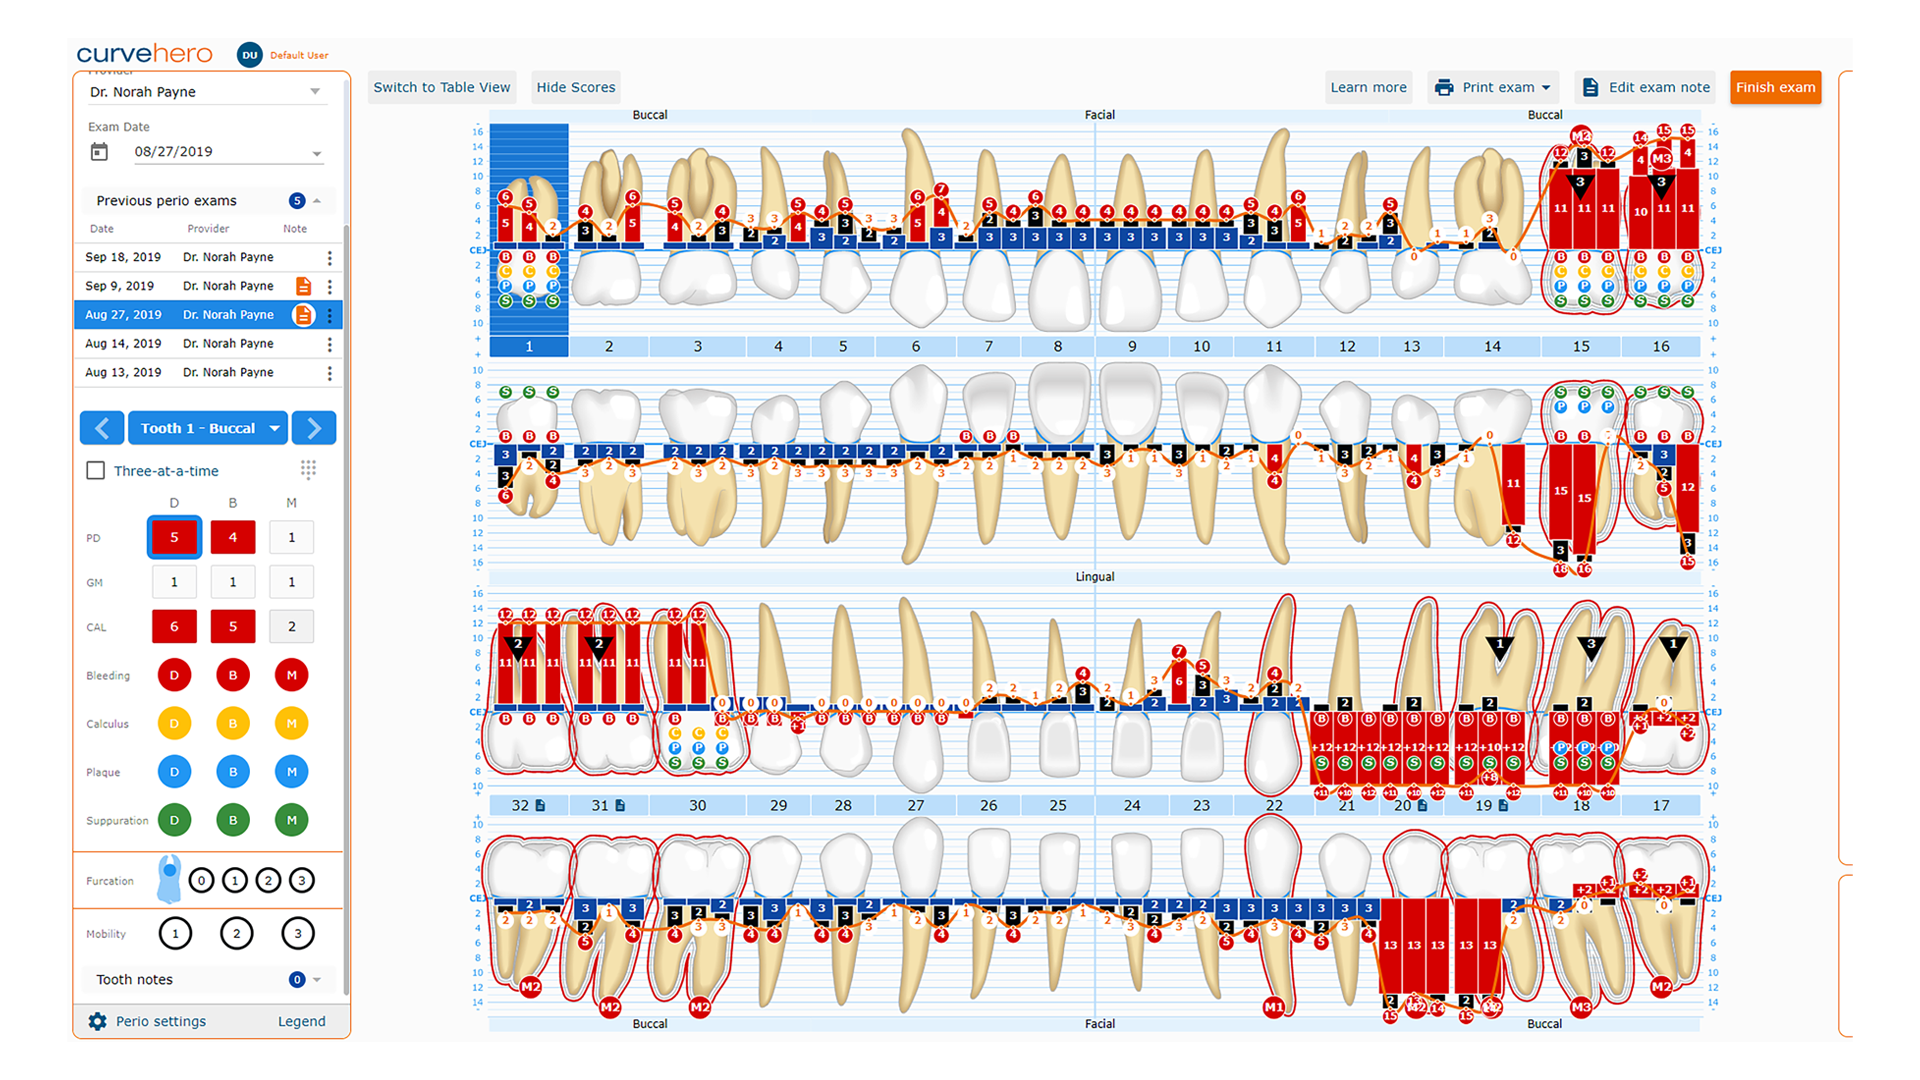 The Perio Charting graphical view provides detailed periodontal information at a glance.